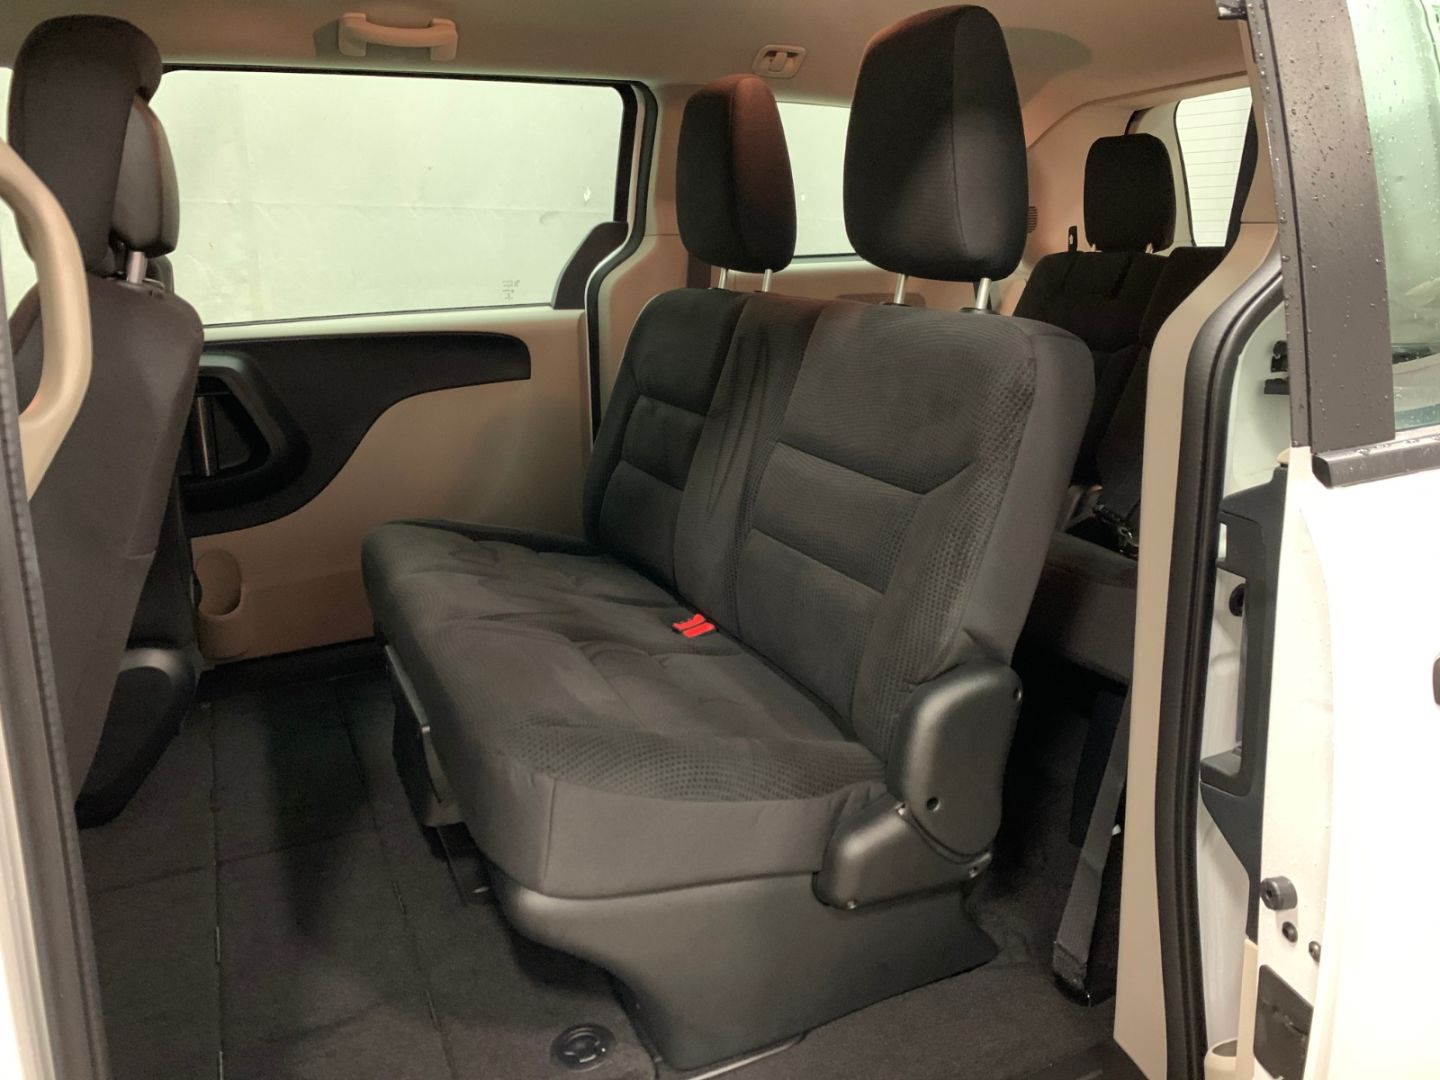 2019 Dodge Grand Caravan Canada Value Package for sale in Red Deer, Alberta